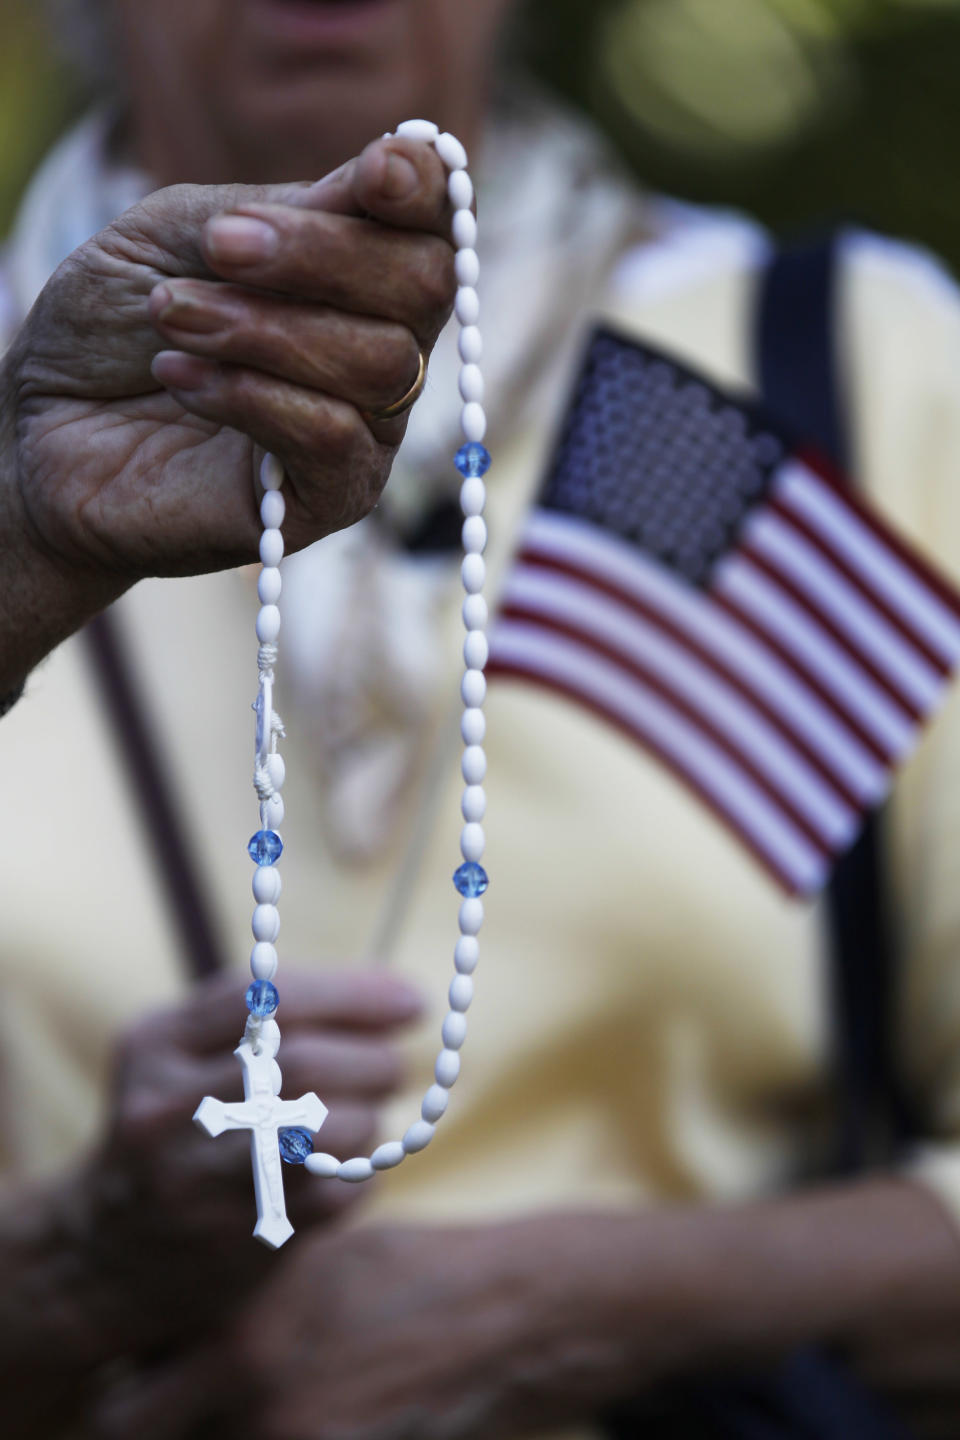 Demonstrators pray with rosary beads during a protest against the Obama administration mandate that employers provide workers birth control coverage, at Independence Mall, Friday, June 8, 2012, in Philadelphia. The event was organized by Stand Up For Religious Freedom. (AP Photo/Matt Rourke)